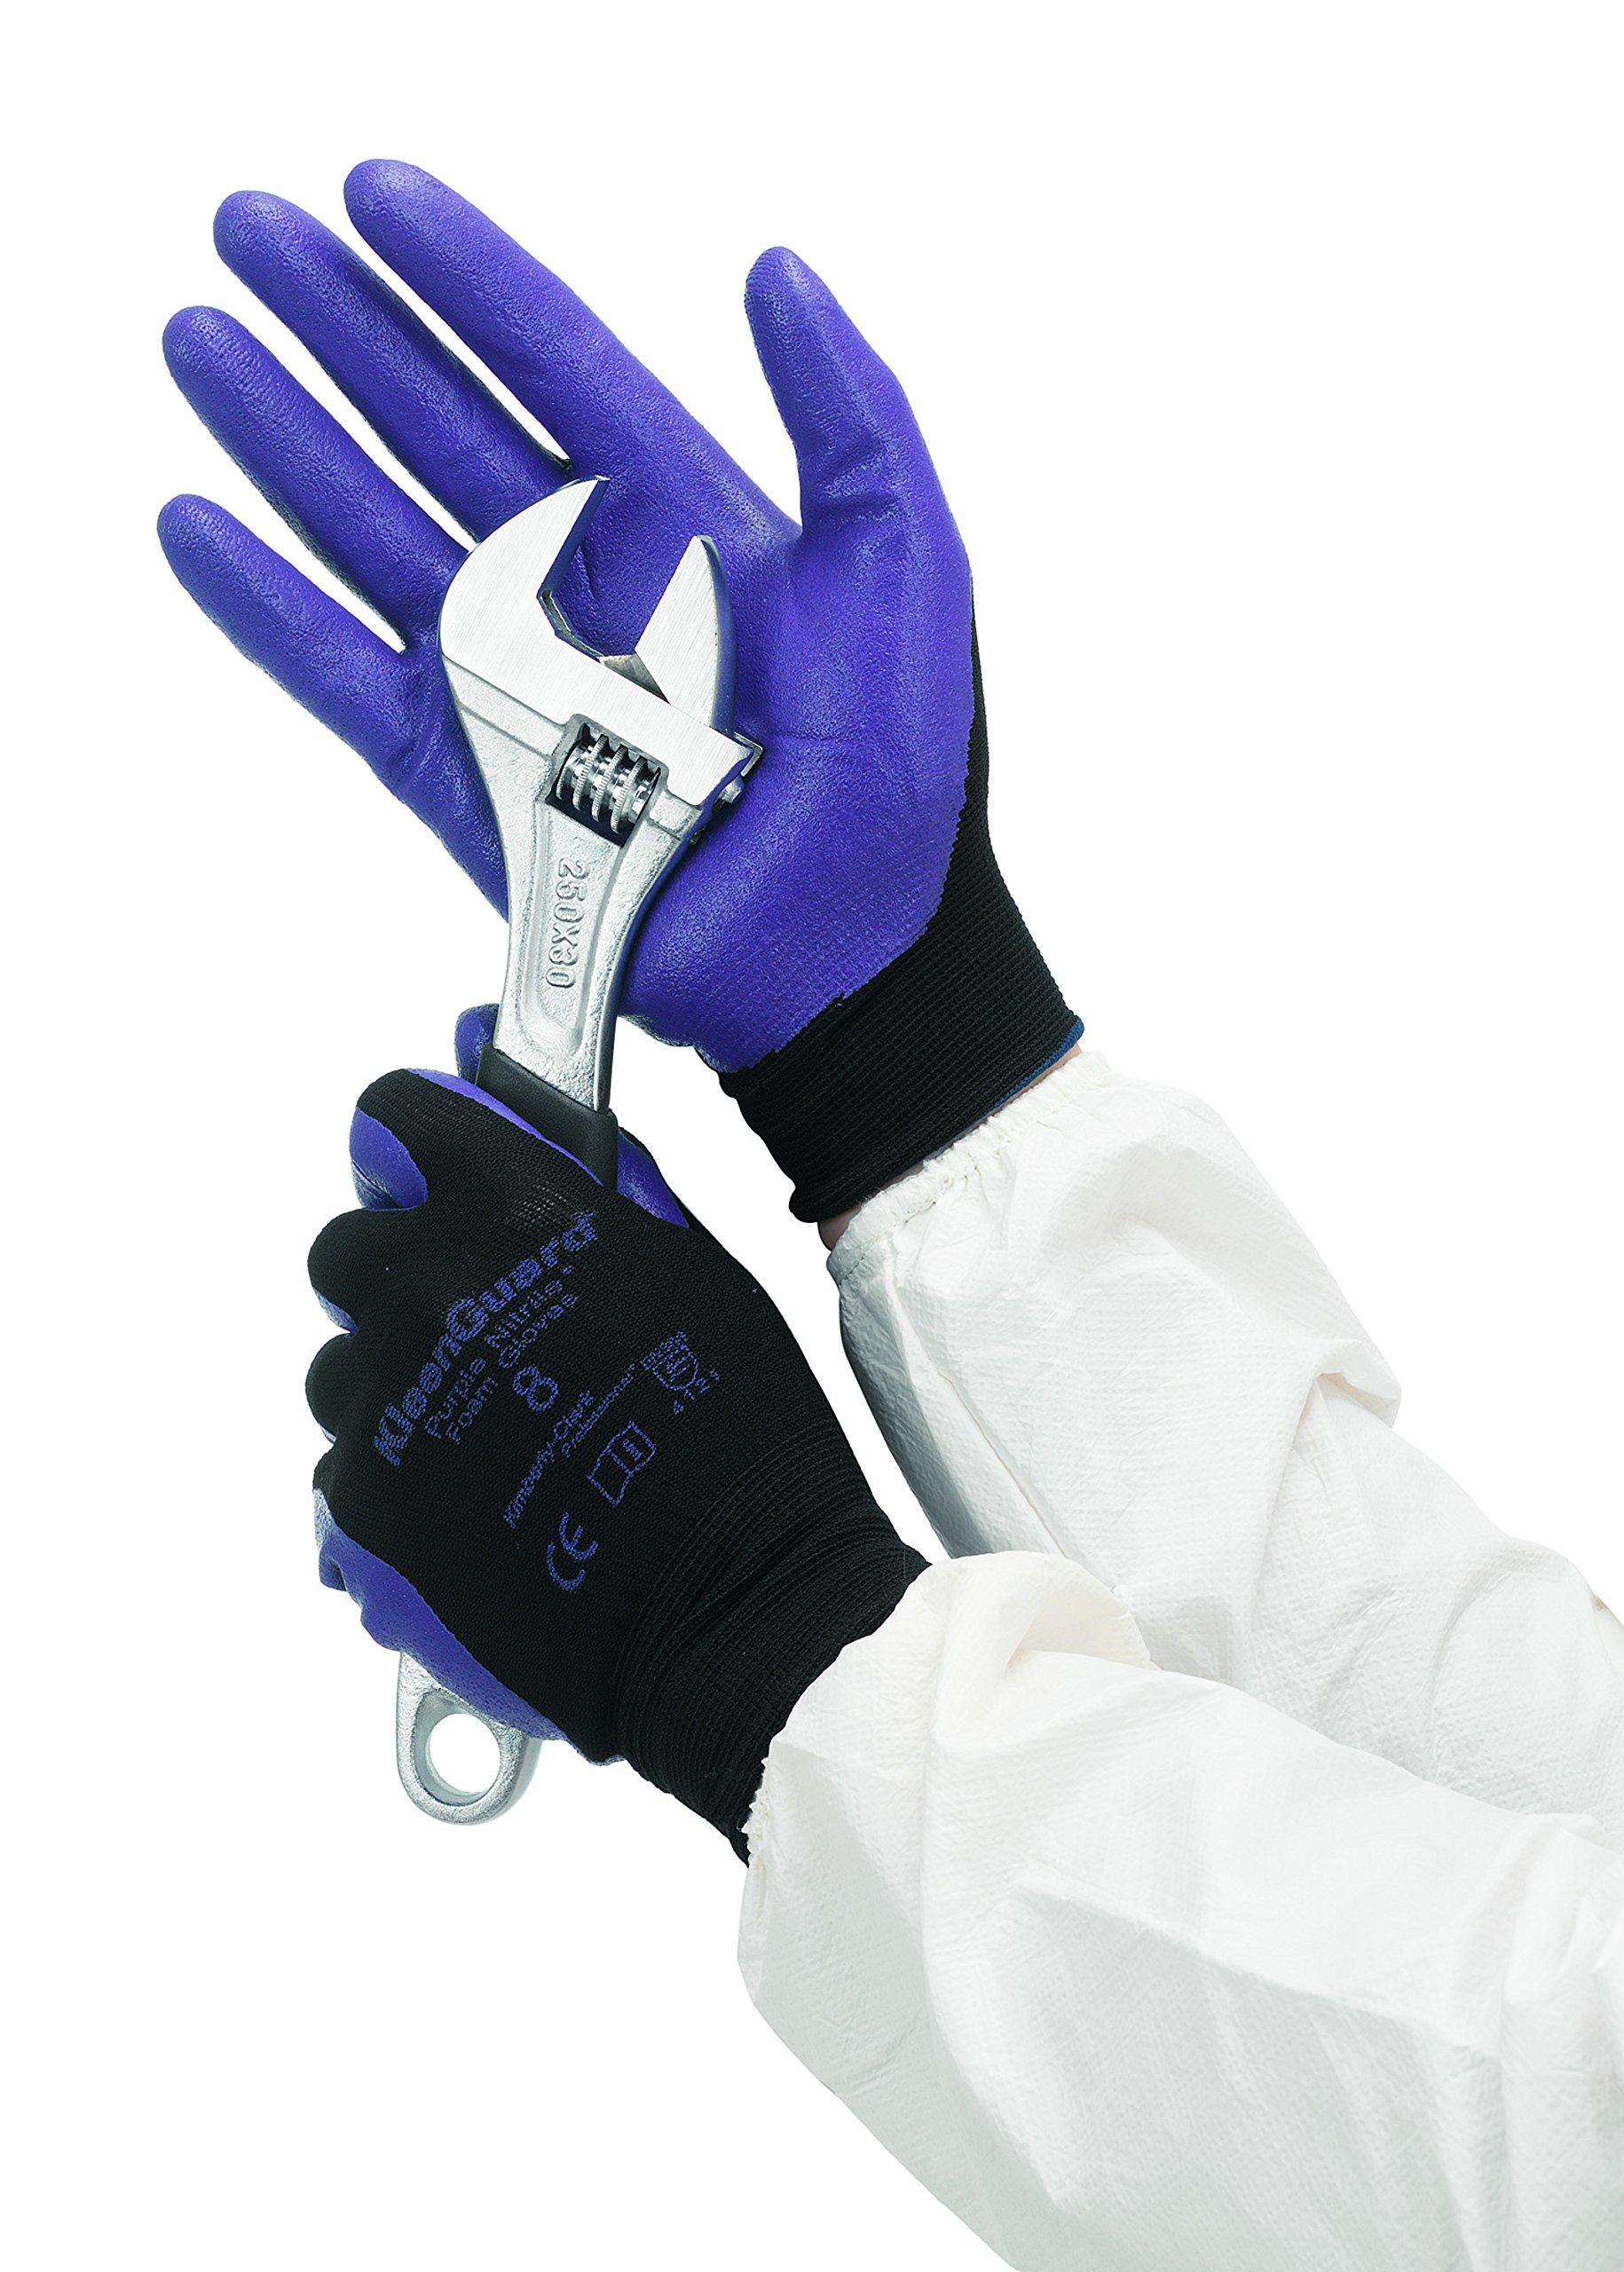 Jackson Safety G40 Foam Nitrile Coated Gloves (40228), XL, Abrasion Resistant Black & Blue Nitrile Grip Glove, 12 Pairs/Bag, 5 Bags/Case by Jackson Safety